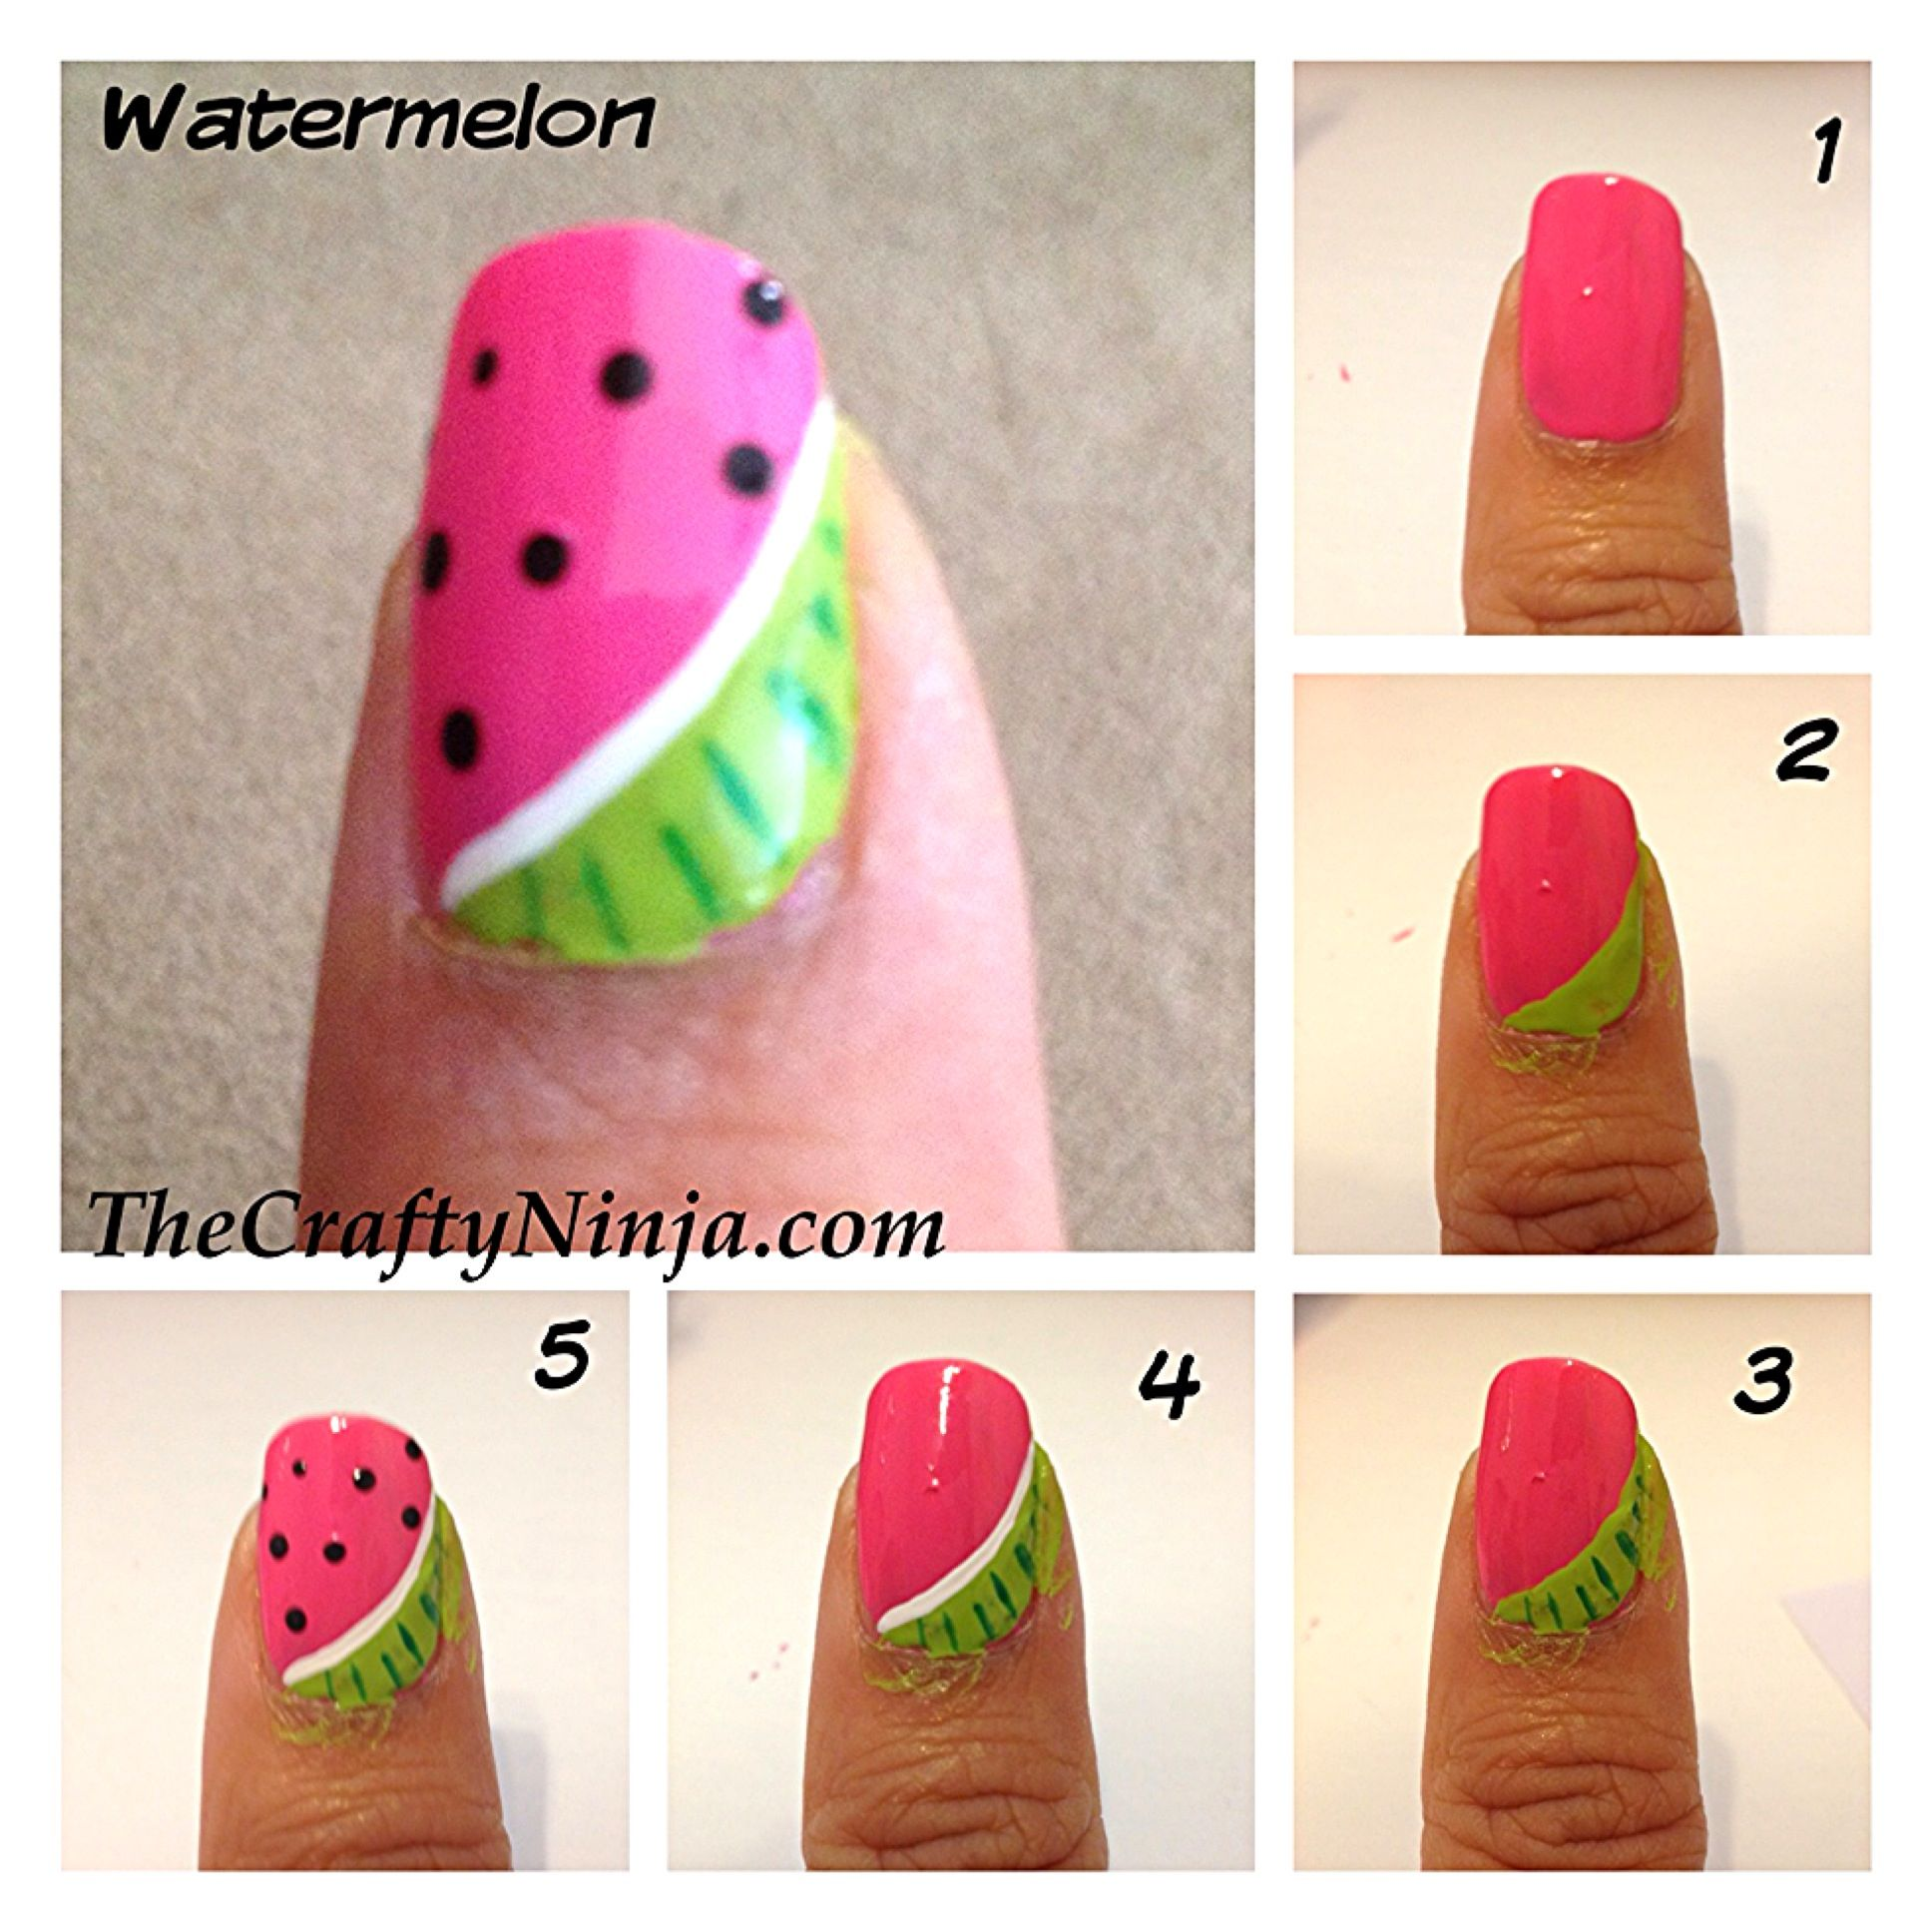 Sandias Decoradas Watermelon Nail Tutorial D Tutoriales De Uñas Nails